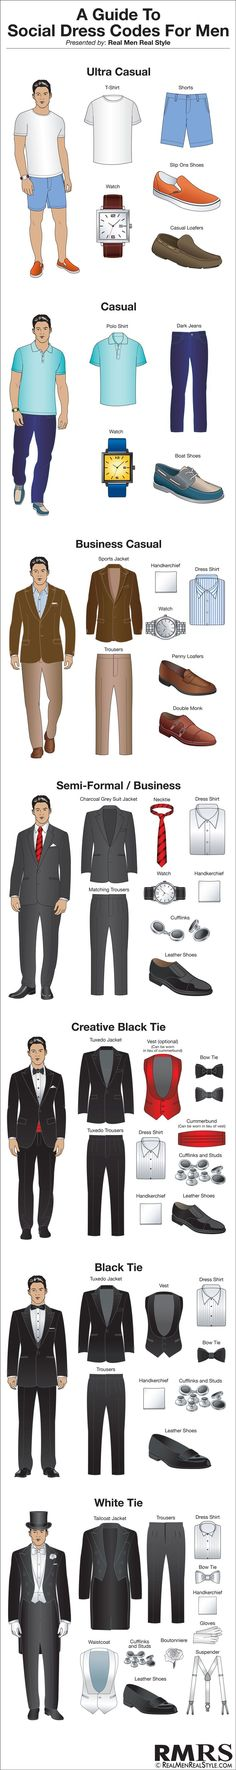 7 Levels Of Dress Code Etiquette